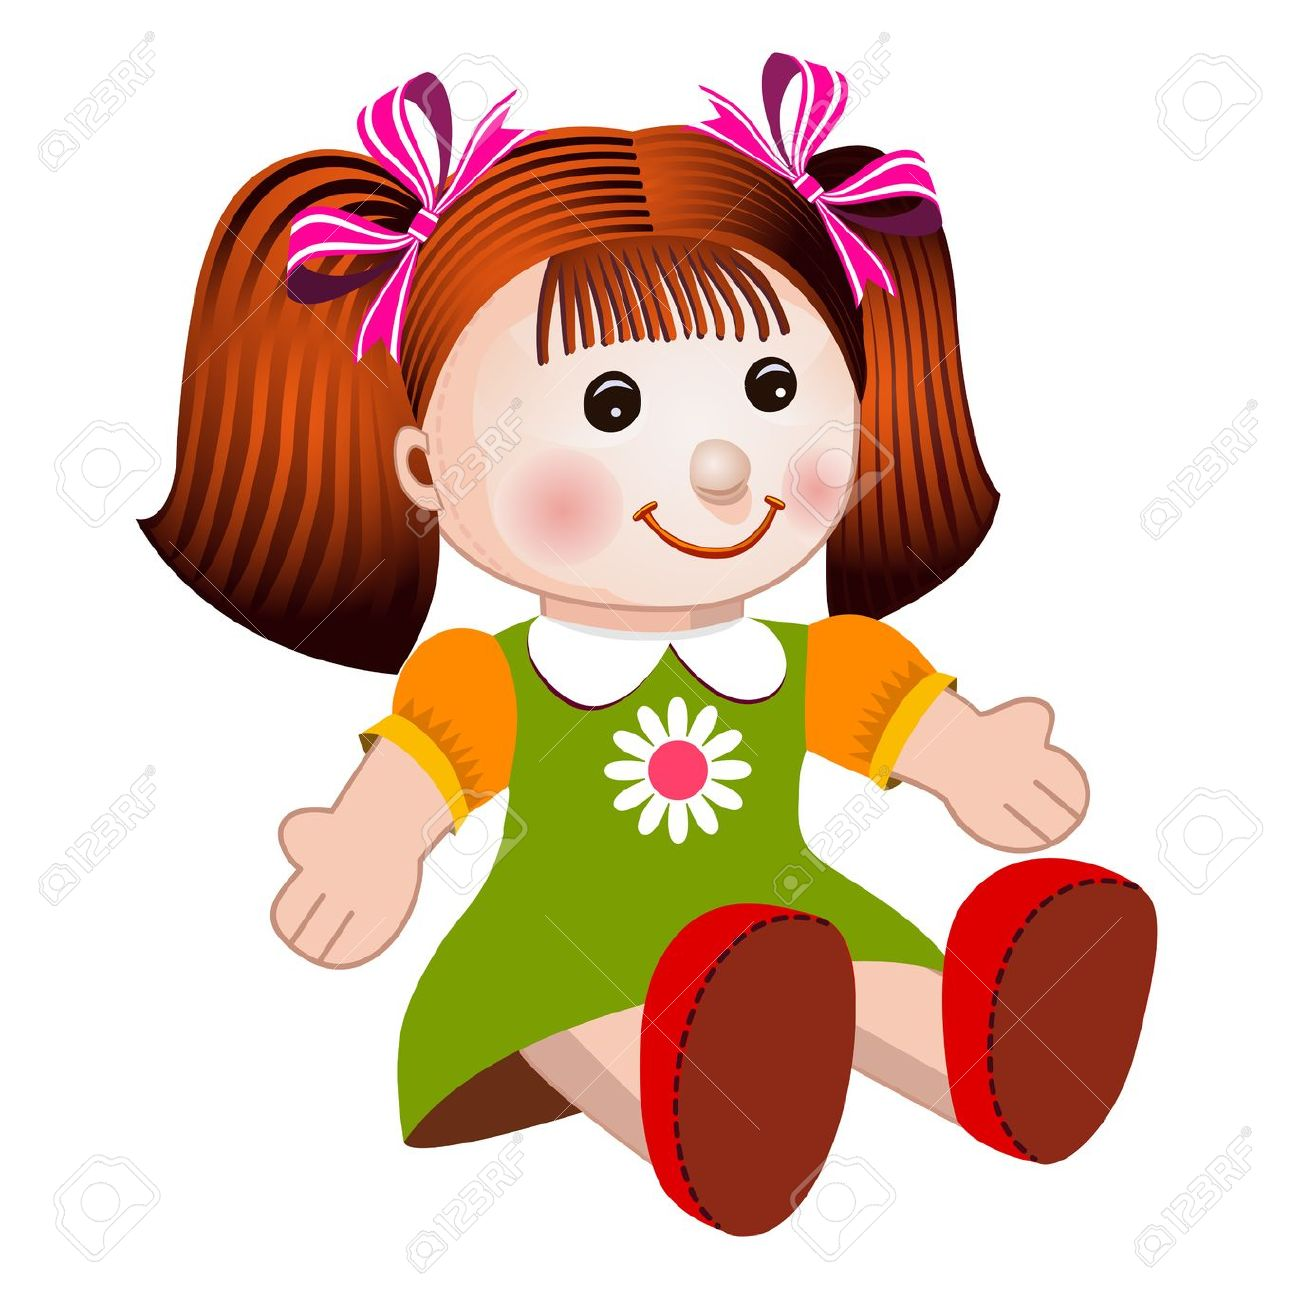 Doll clip art panda. Free clipart of dolls